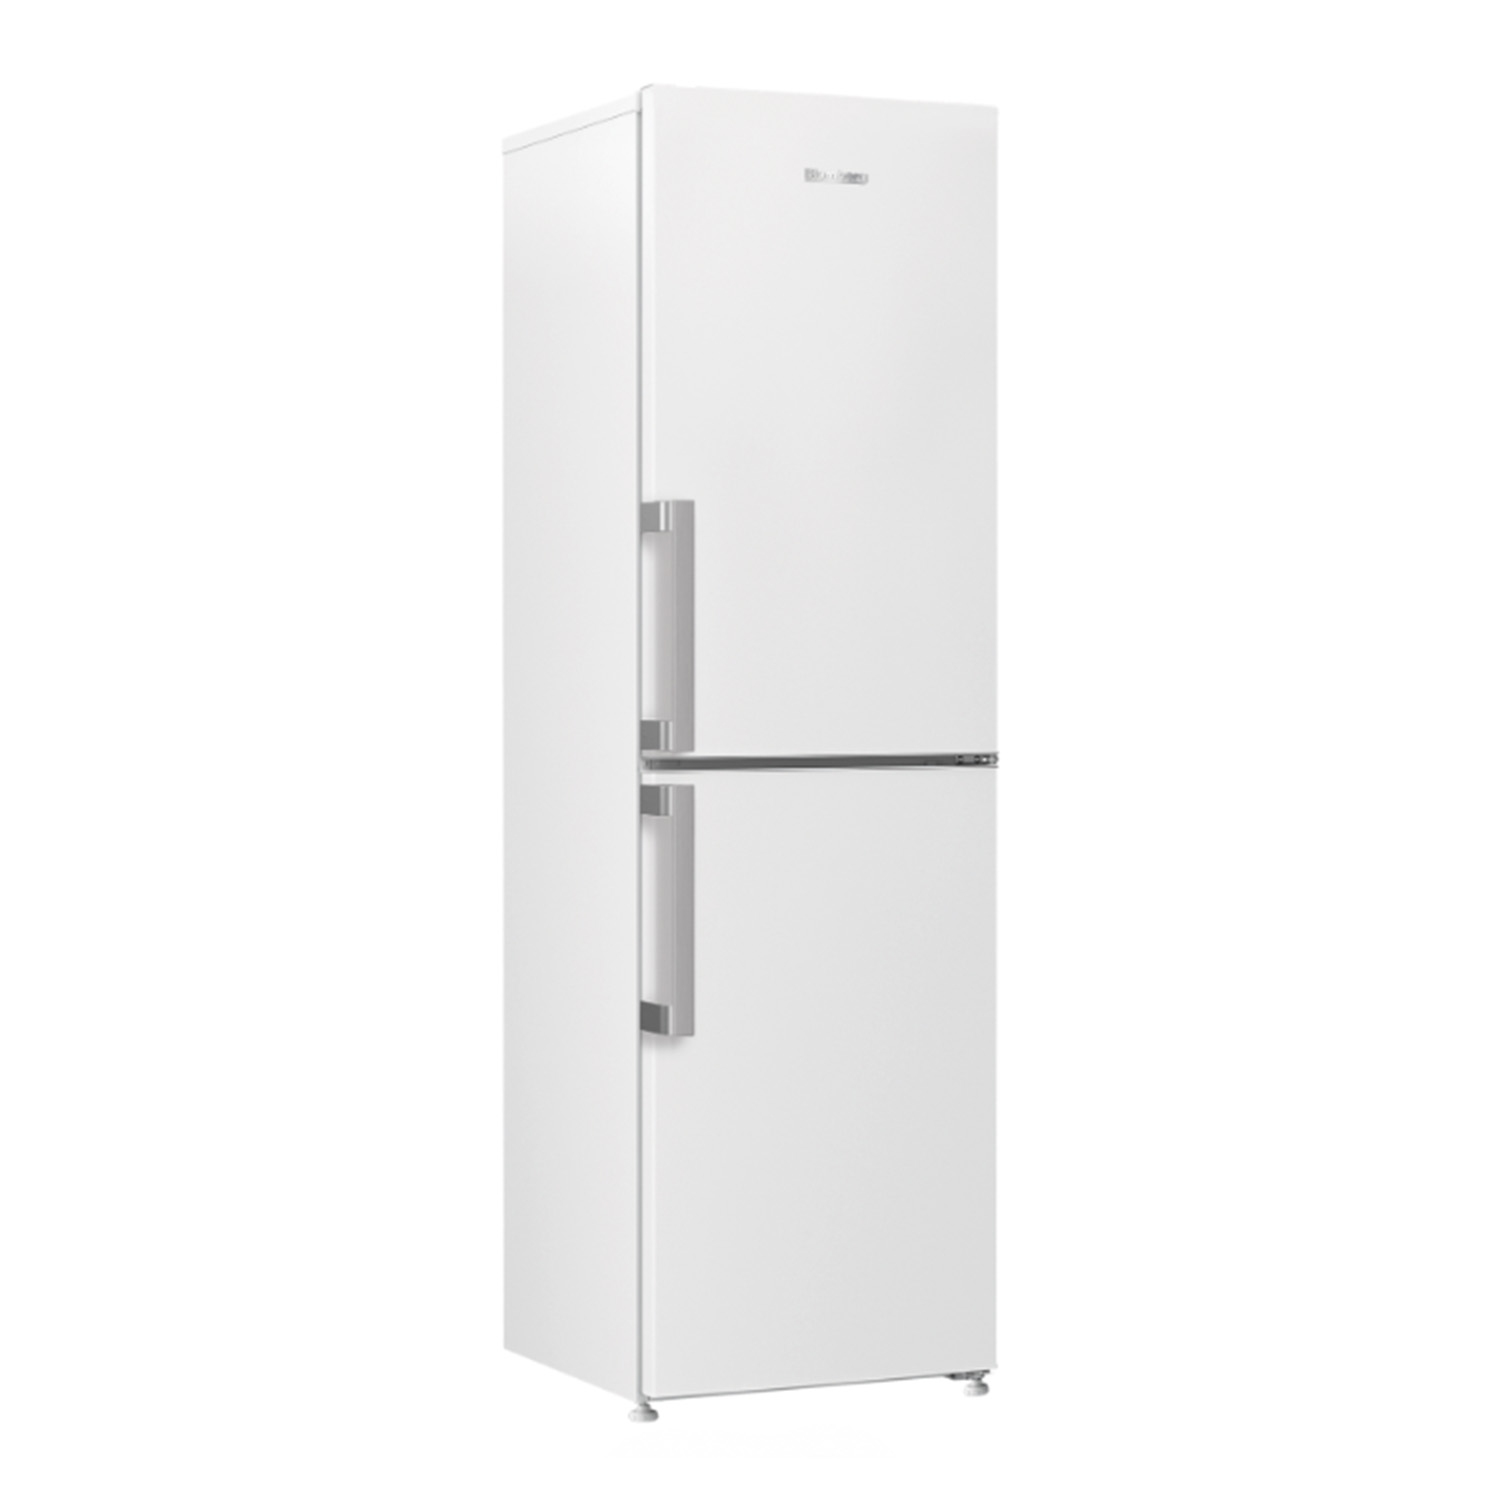 Blomberg Frost Free Fridge Freezer - White - A+ Energy Rated - 1